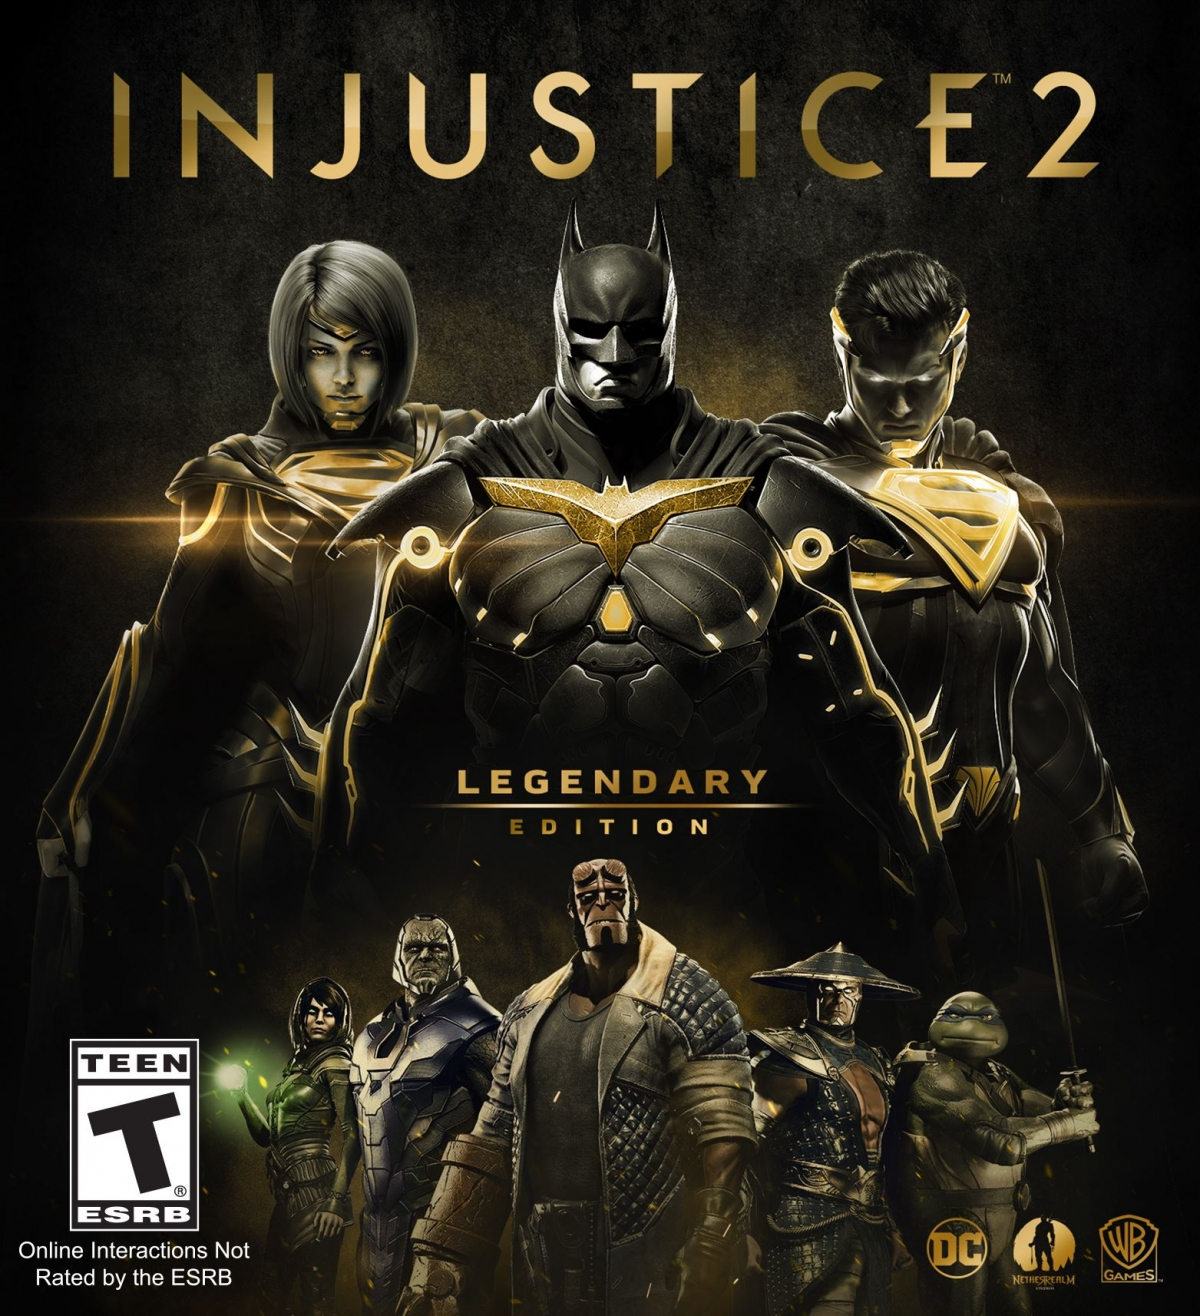 injustice 2 legendary edition release date news coming